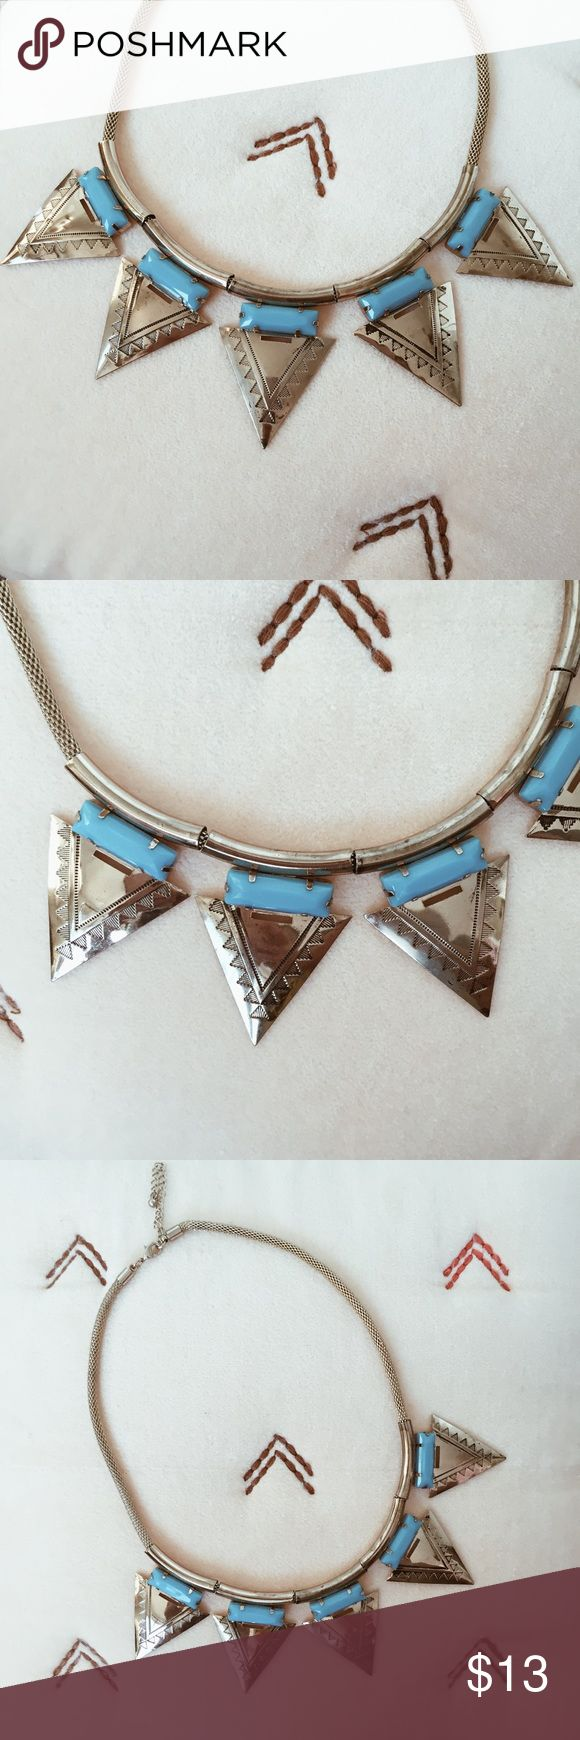 Aztec necklace Add a little Aztec goddess to your look! Lightly worn. Turquoise and gold. Jewelry Necklaces